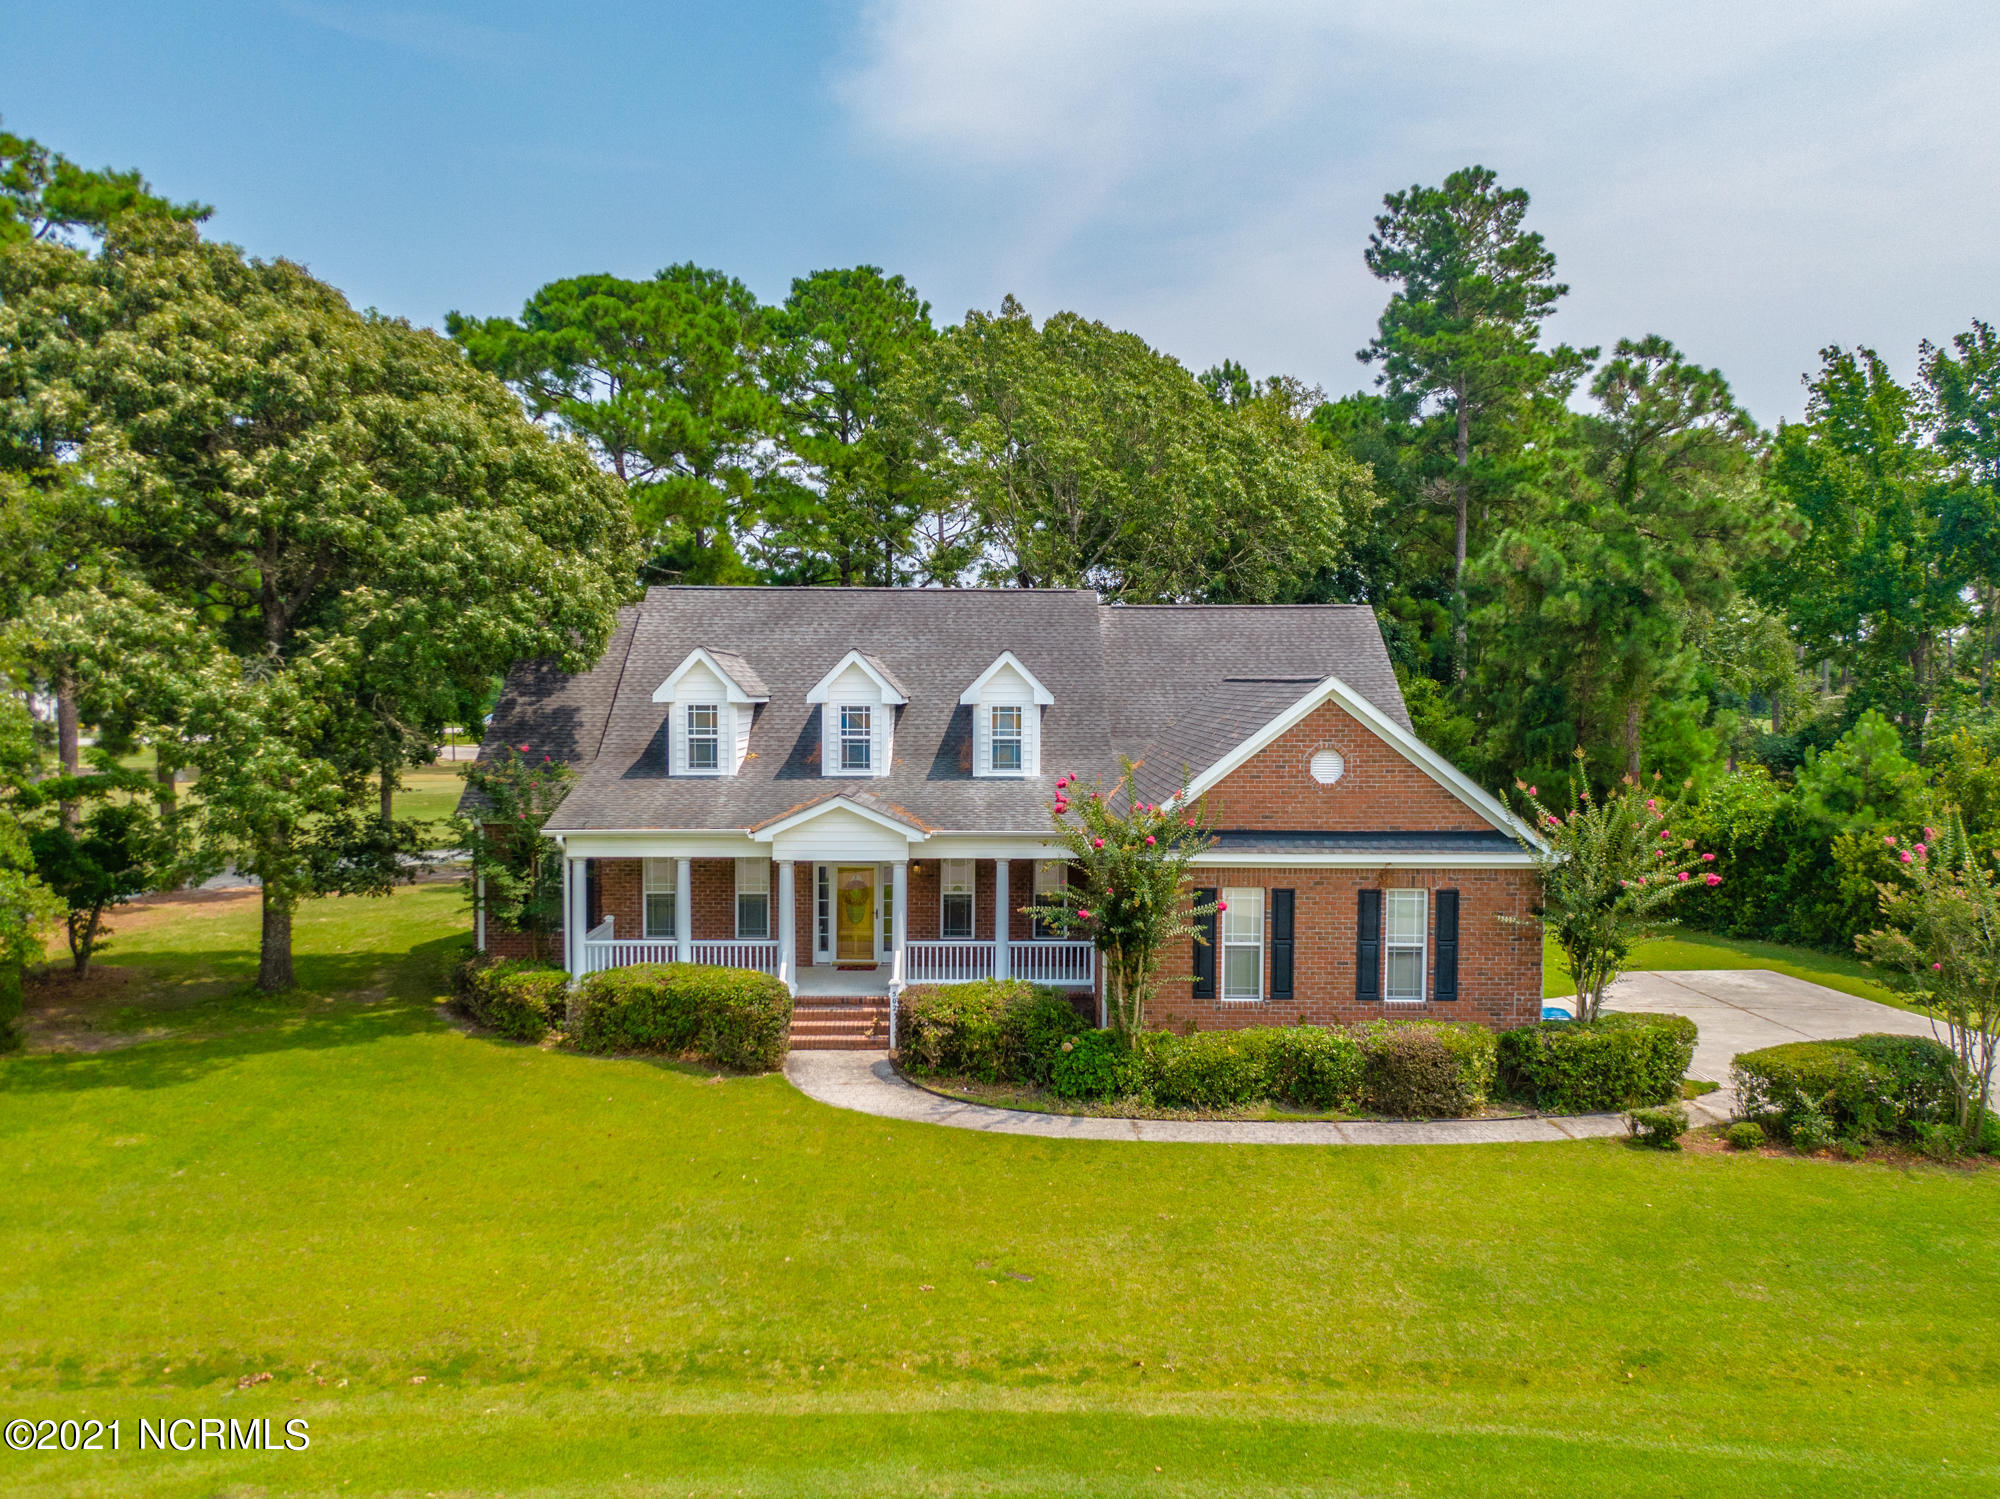 502 Seascape Drive, Sneads Ferry, North Carolina 28460, 3 Bedrooms Bedrooms, 10 Rooms Rooms,3 BathroomsBathrooms,Single family residence,For sale,Seascape,100284635